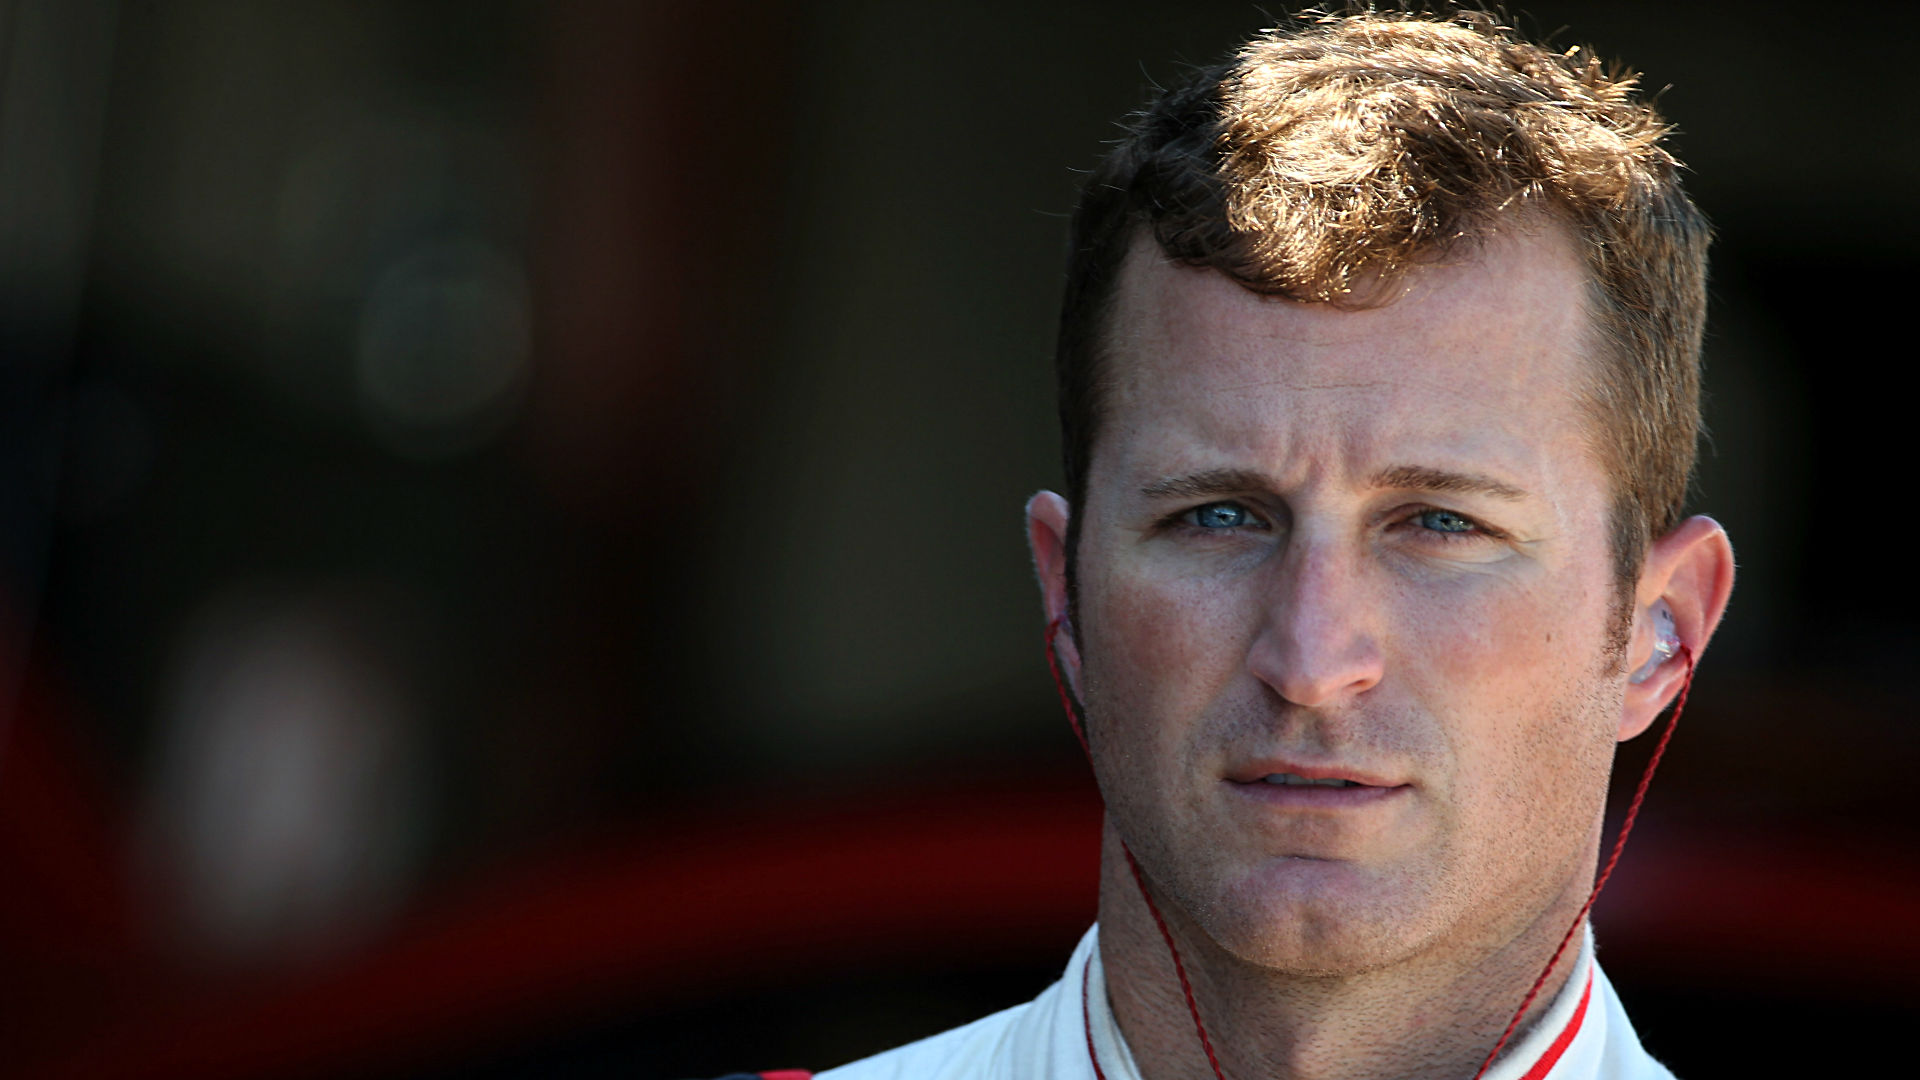 Hendrick Motorsports to drop Kasey Kahne after 2017 season